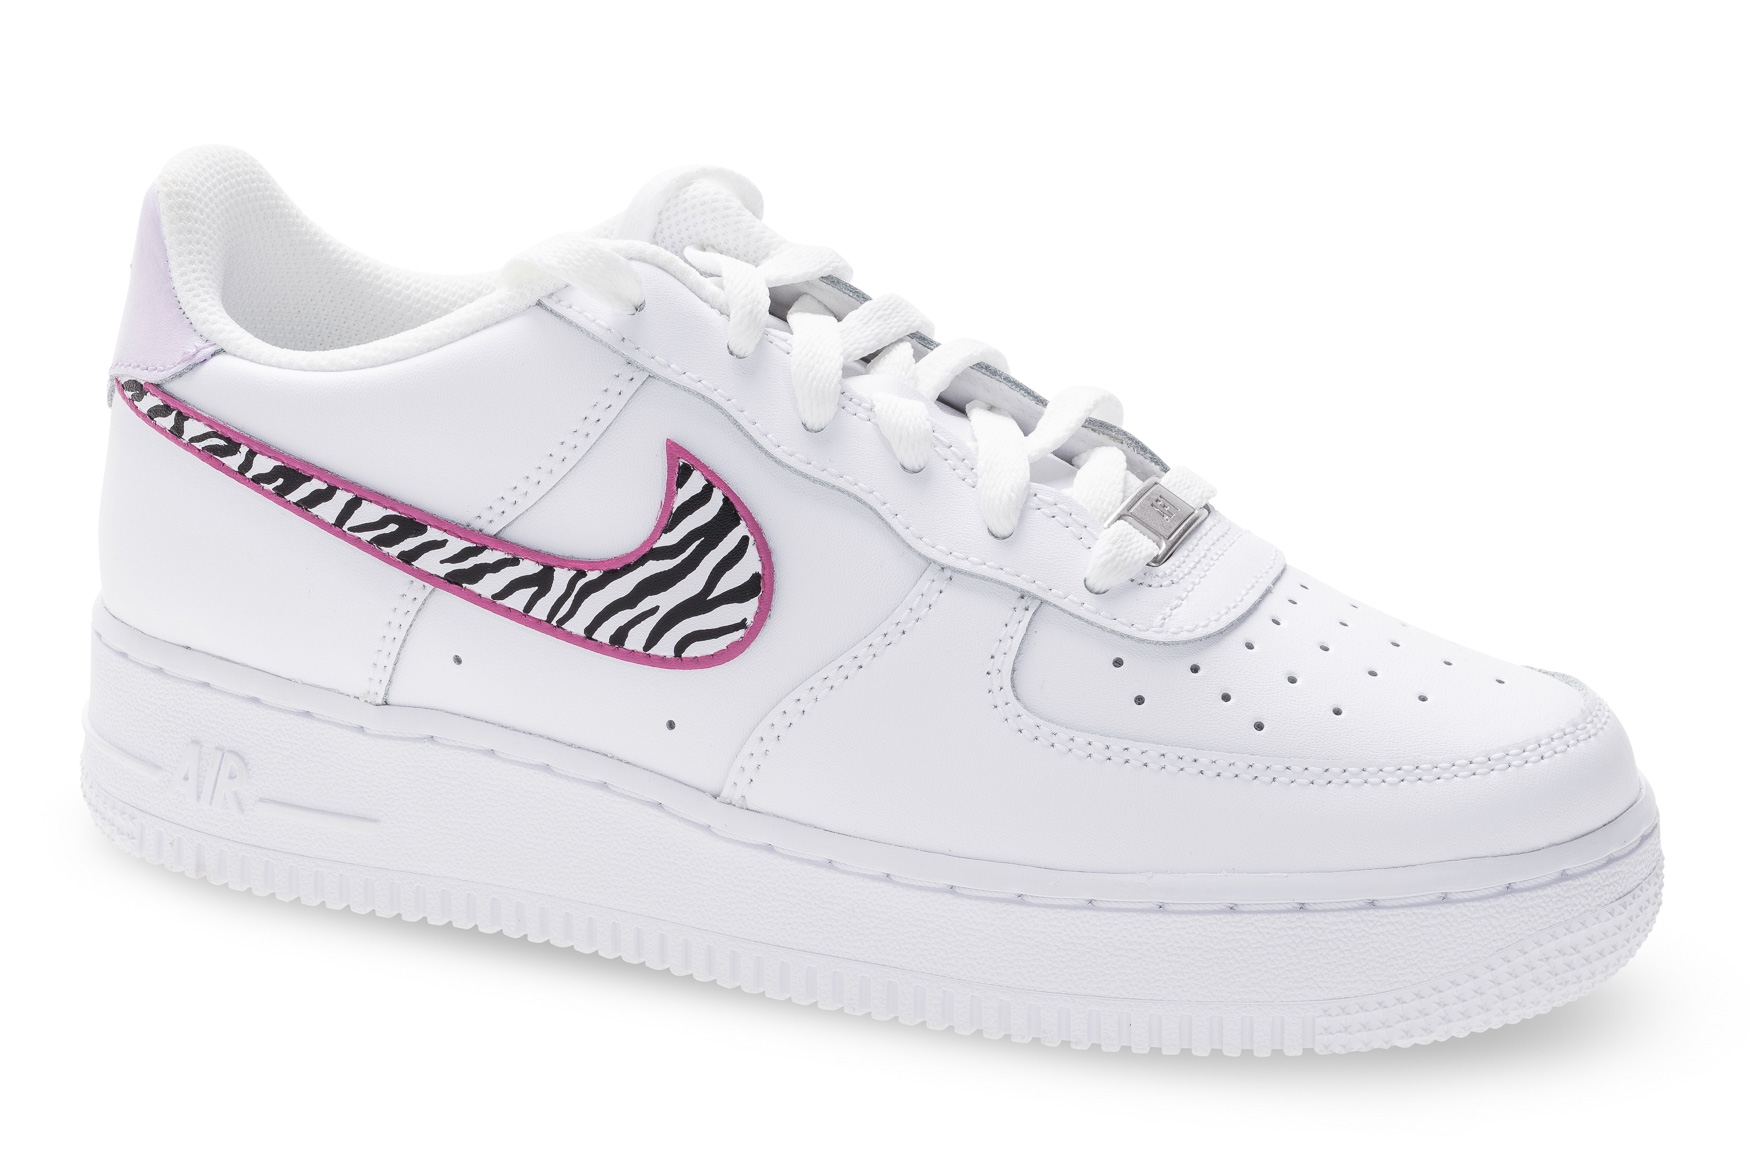 Schoen Nike Air Force 1 Dare To Be Loufz